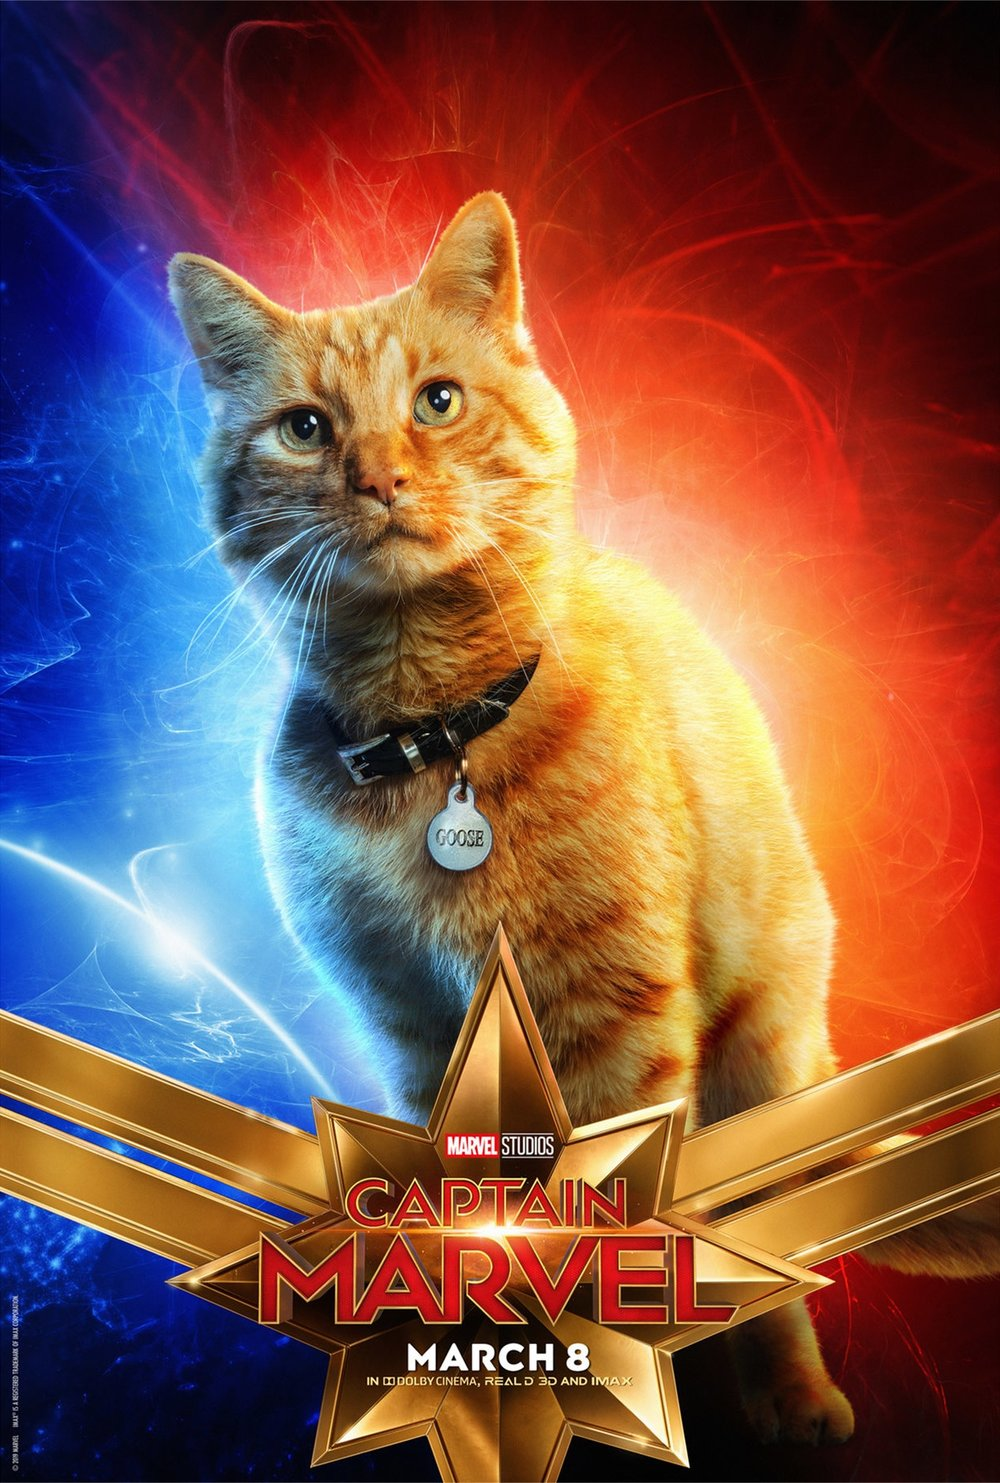 Othersode #25: What's a cat? / Captain Marvel! - The #BookSquad crash lands on planet C-53, aka Earth in the mid-90s, to talk about Captain Marvel, the newest origin story movie in the Marvel Cinematic Universe. We discuss where this movie fits in the MCU, how it works as trauma narrative, the film's feminist themes, how it compares to other superhero origin stories, and — of course — Goose the cat! Plus, we give you a rundown of what's on the #BookSquadBlog (it's a lot of recaps!) and what's up next on thepod. Read along with us for our next #bookpisode on Fruit of the Drunken Tree by Ingrid Rojas Contreras. Our next #othersode will be on the remake of Pet Sematary, coming to theaters soon! Don't forget to rate, review and subscribe to the podcast, and send any listener feedback to us atthesquad@booksquadgoals.com. We want to hear from you!